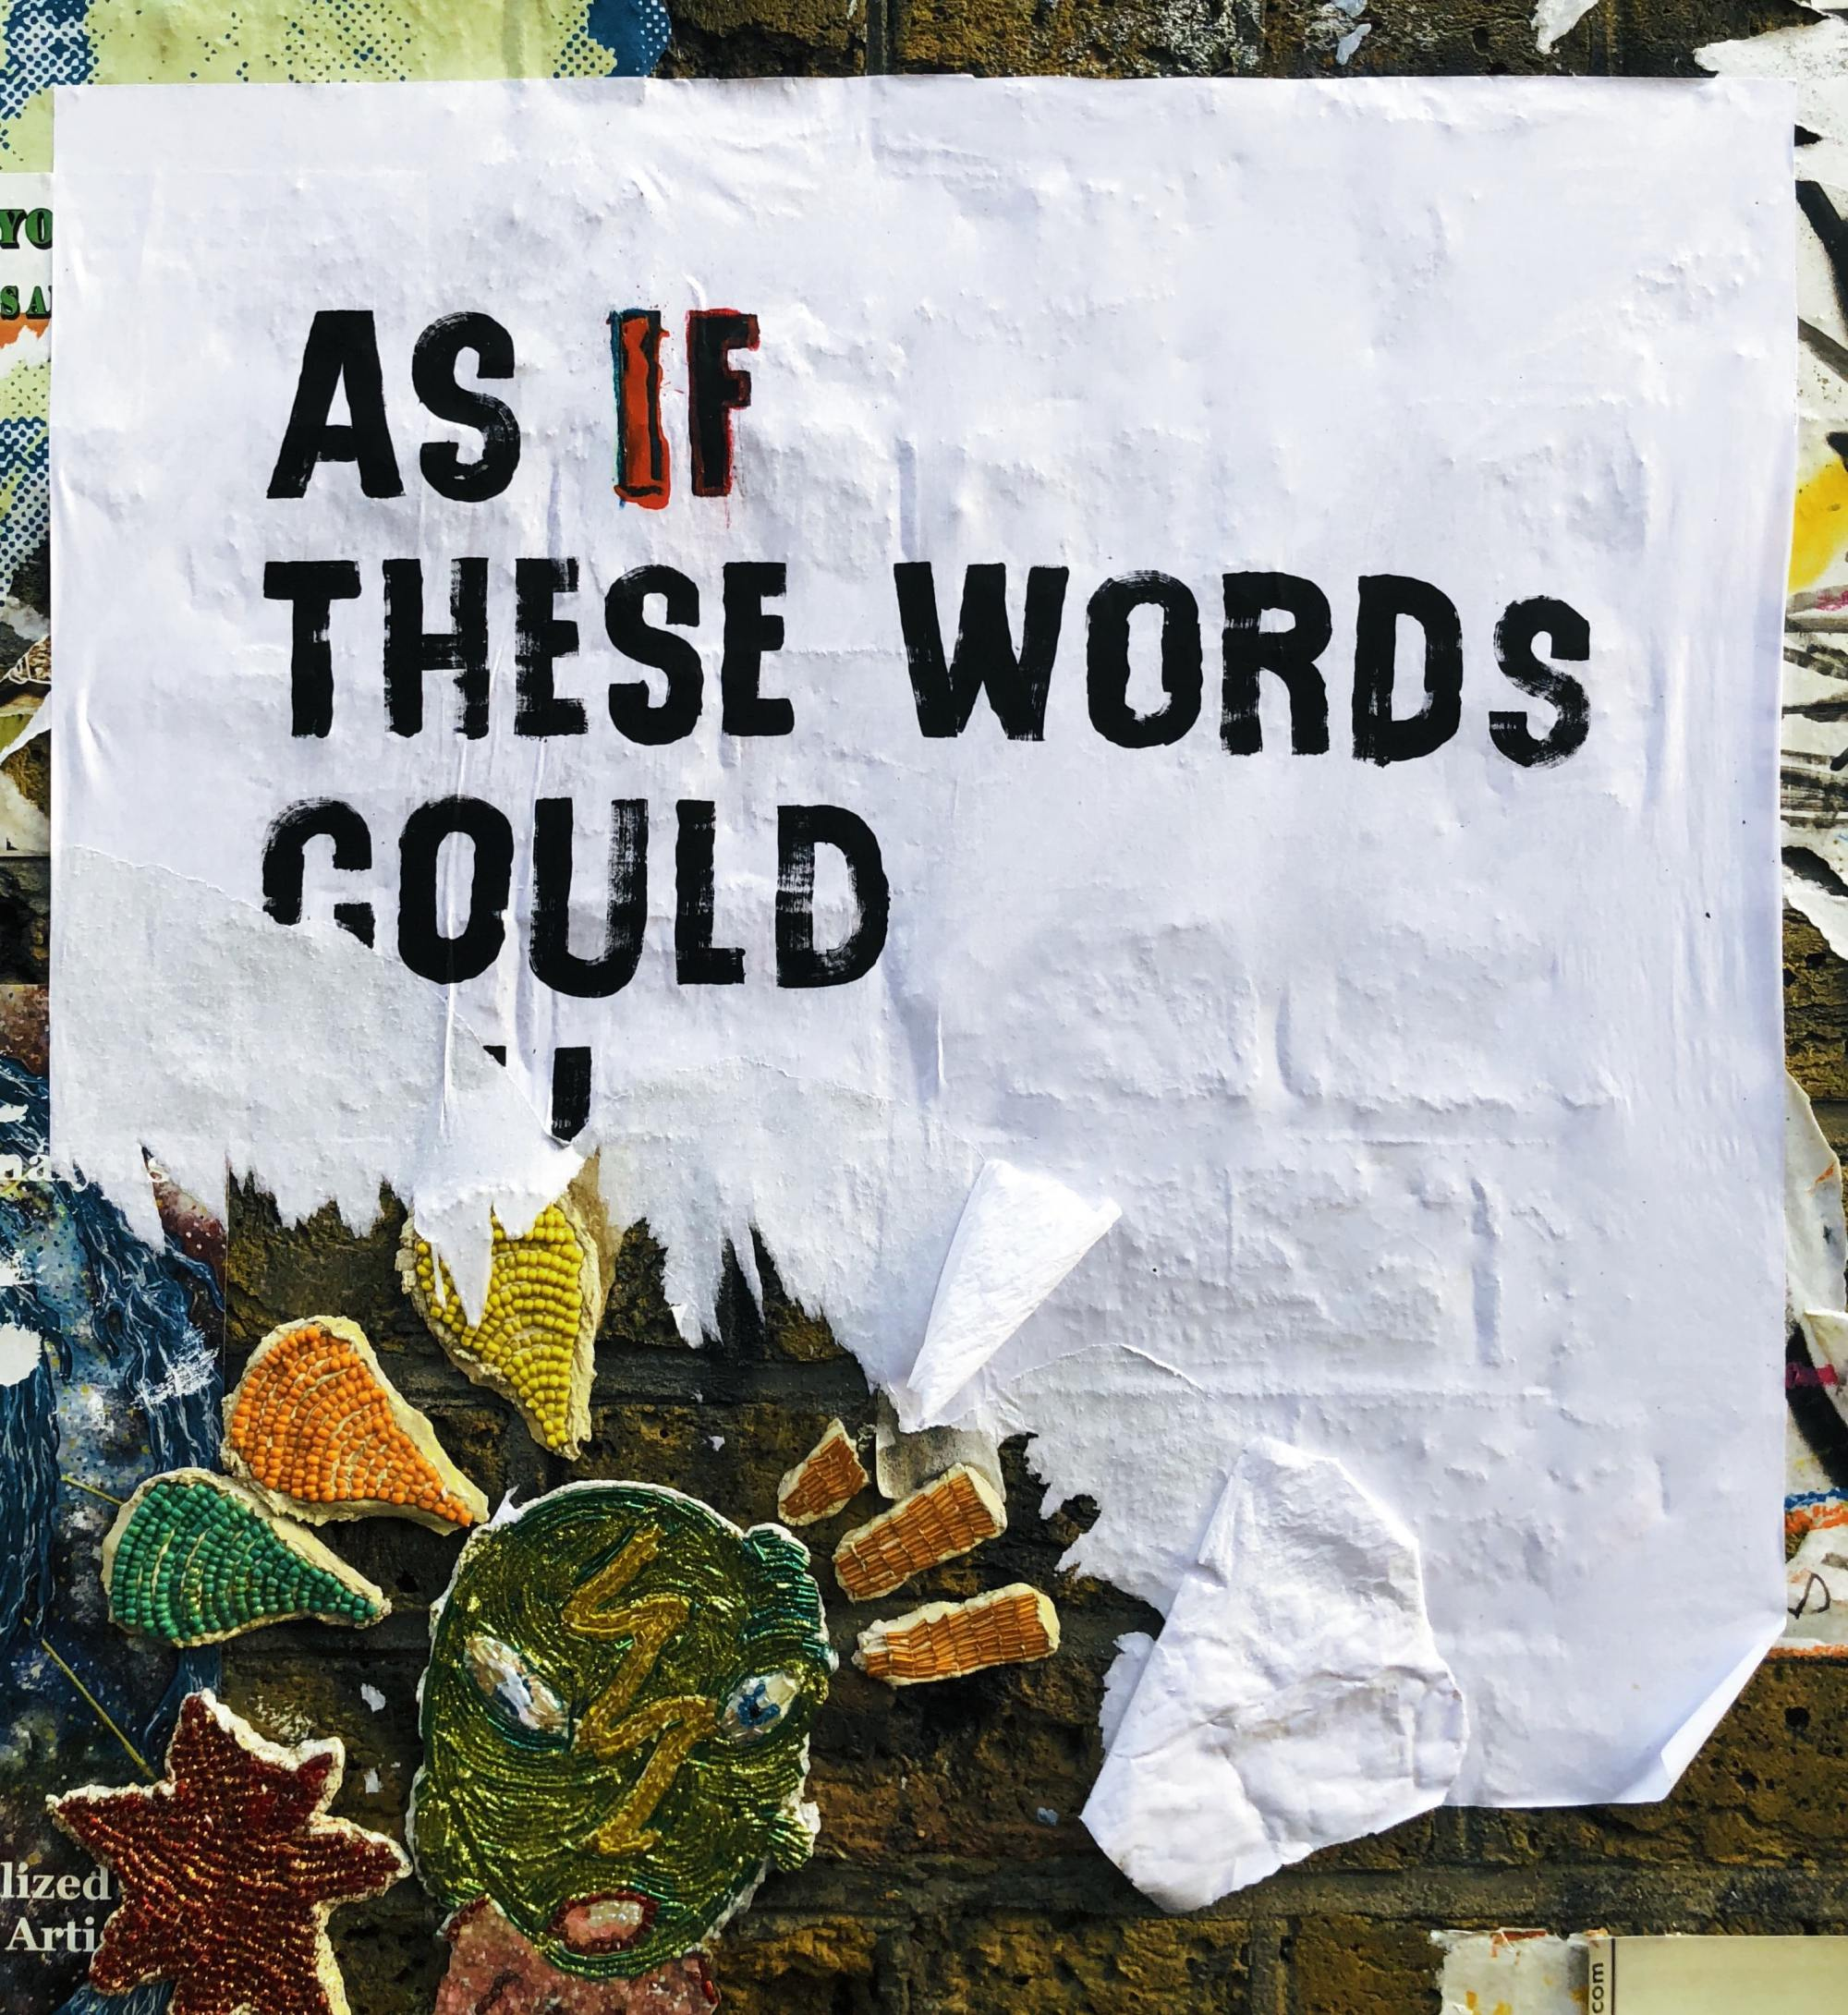 Ripped billboard where only the words: 'As If These Words Could' can be seen